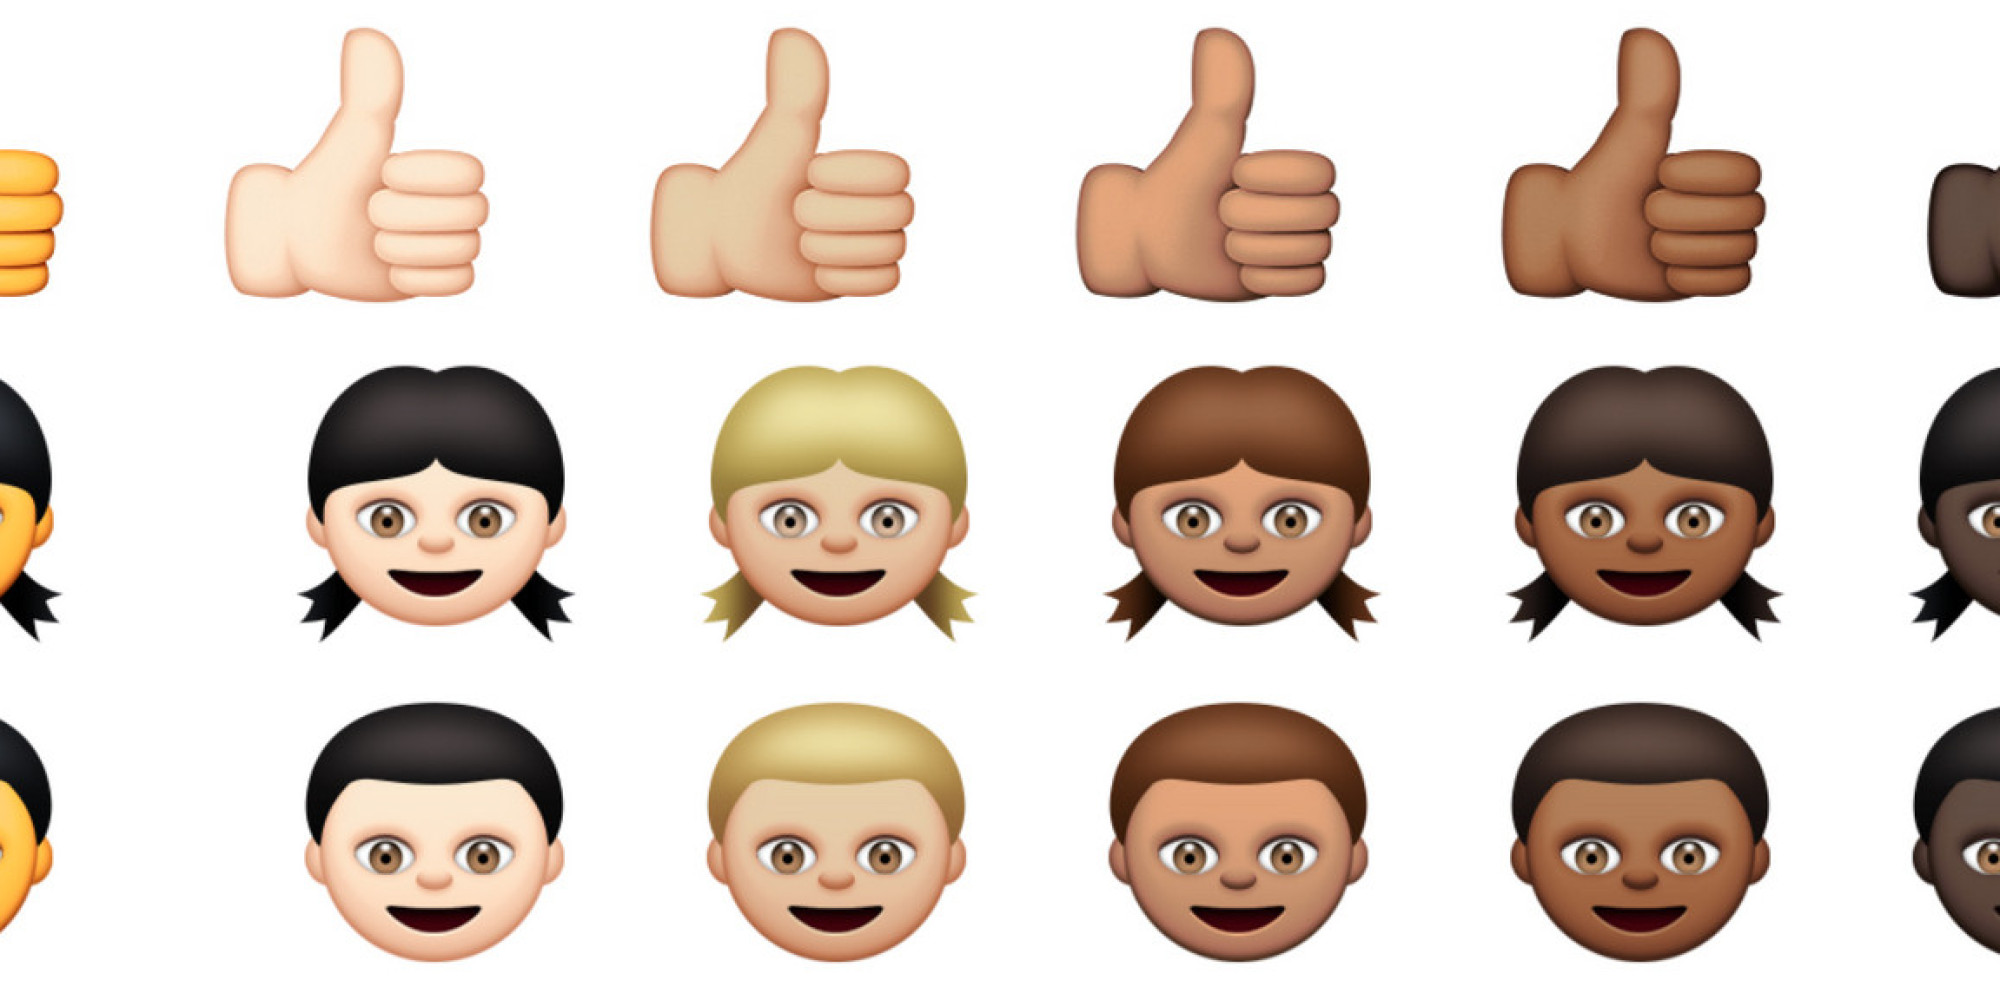 Apple Launches Racially Diverse Emoji With New IOS Update